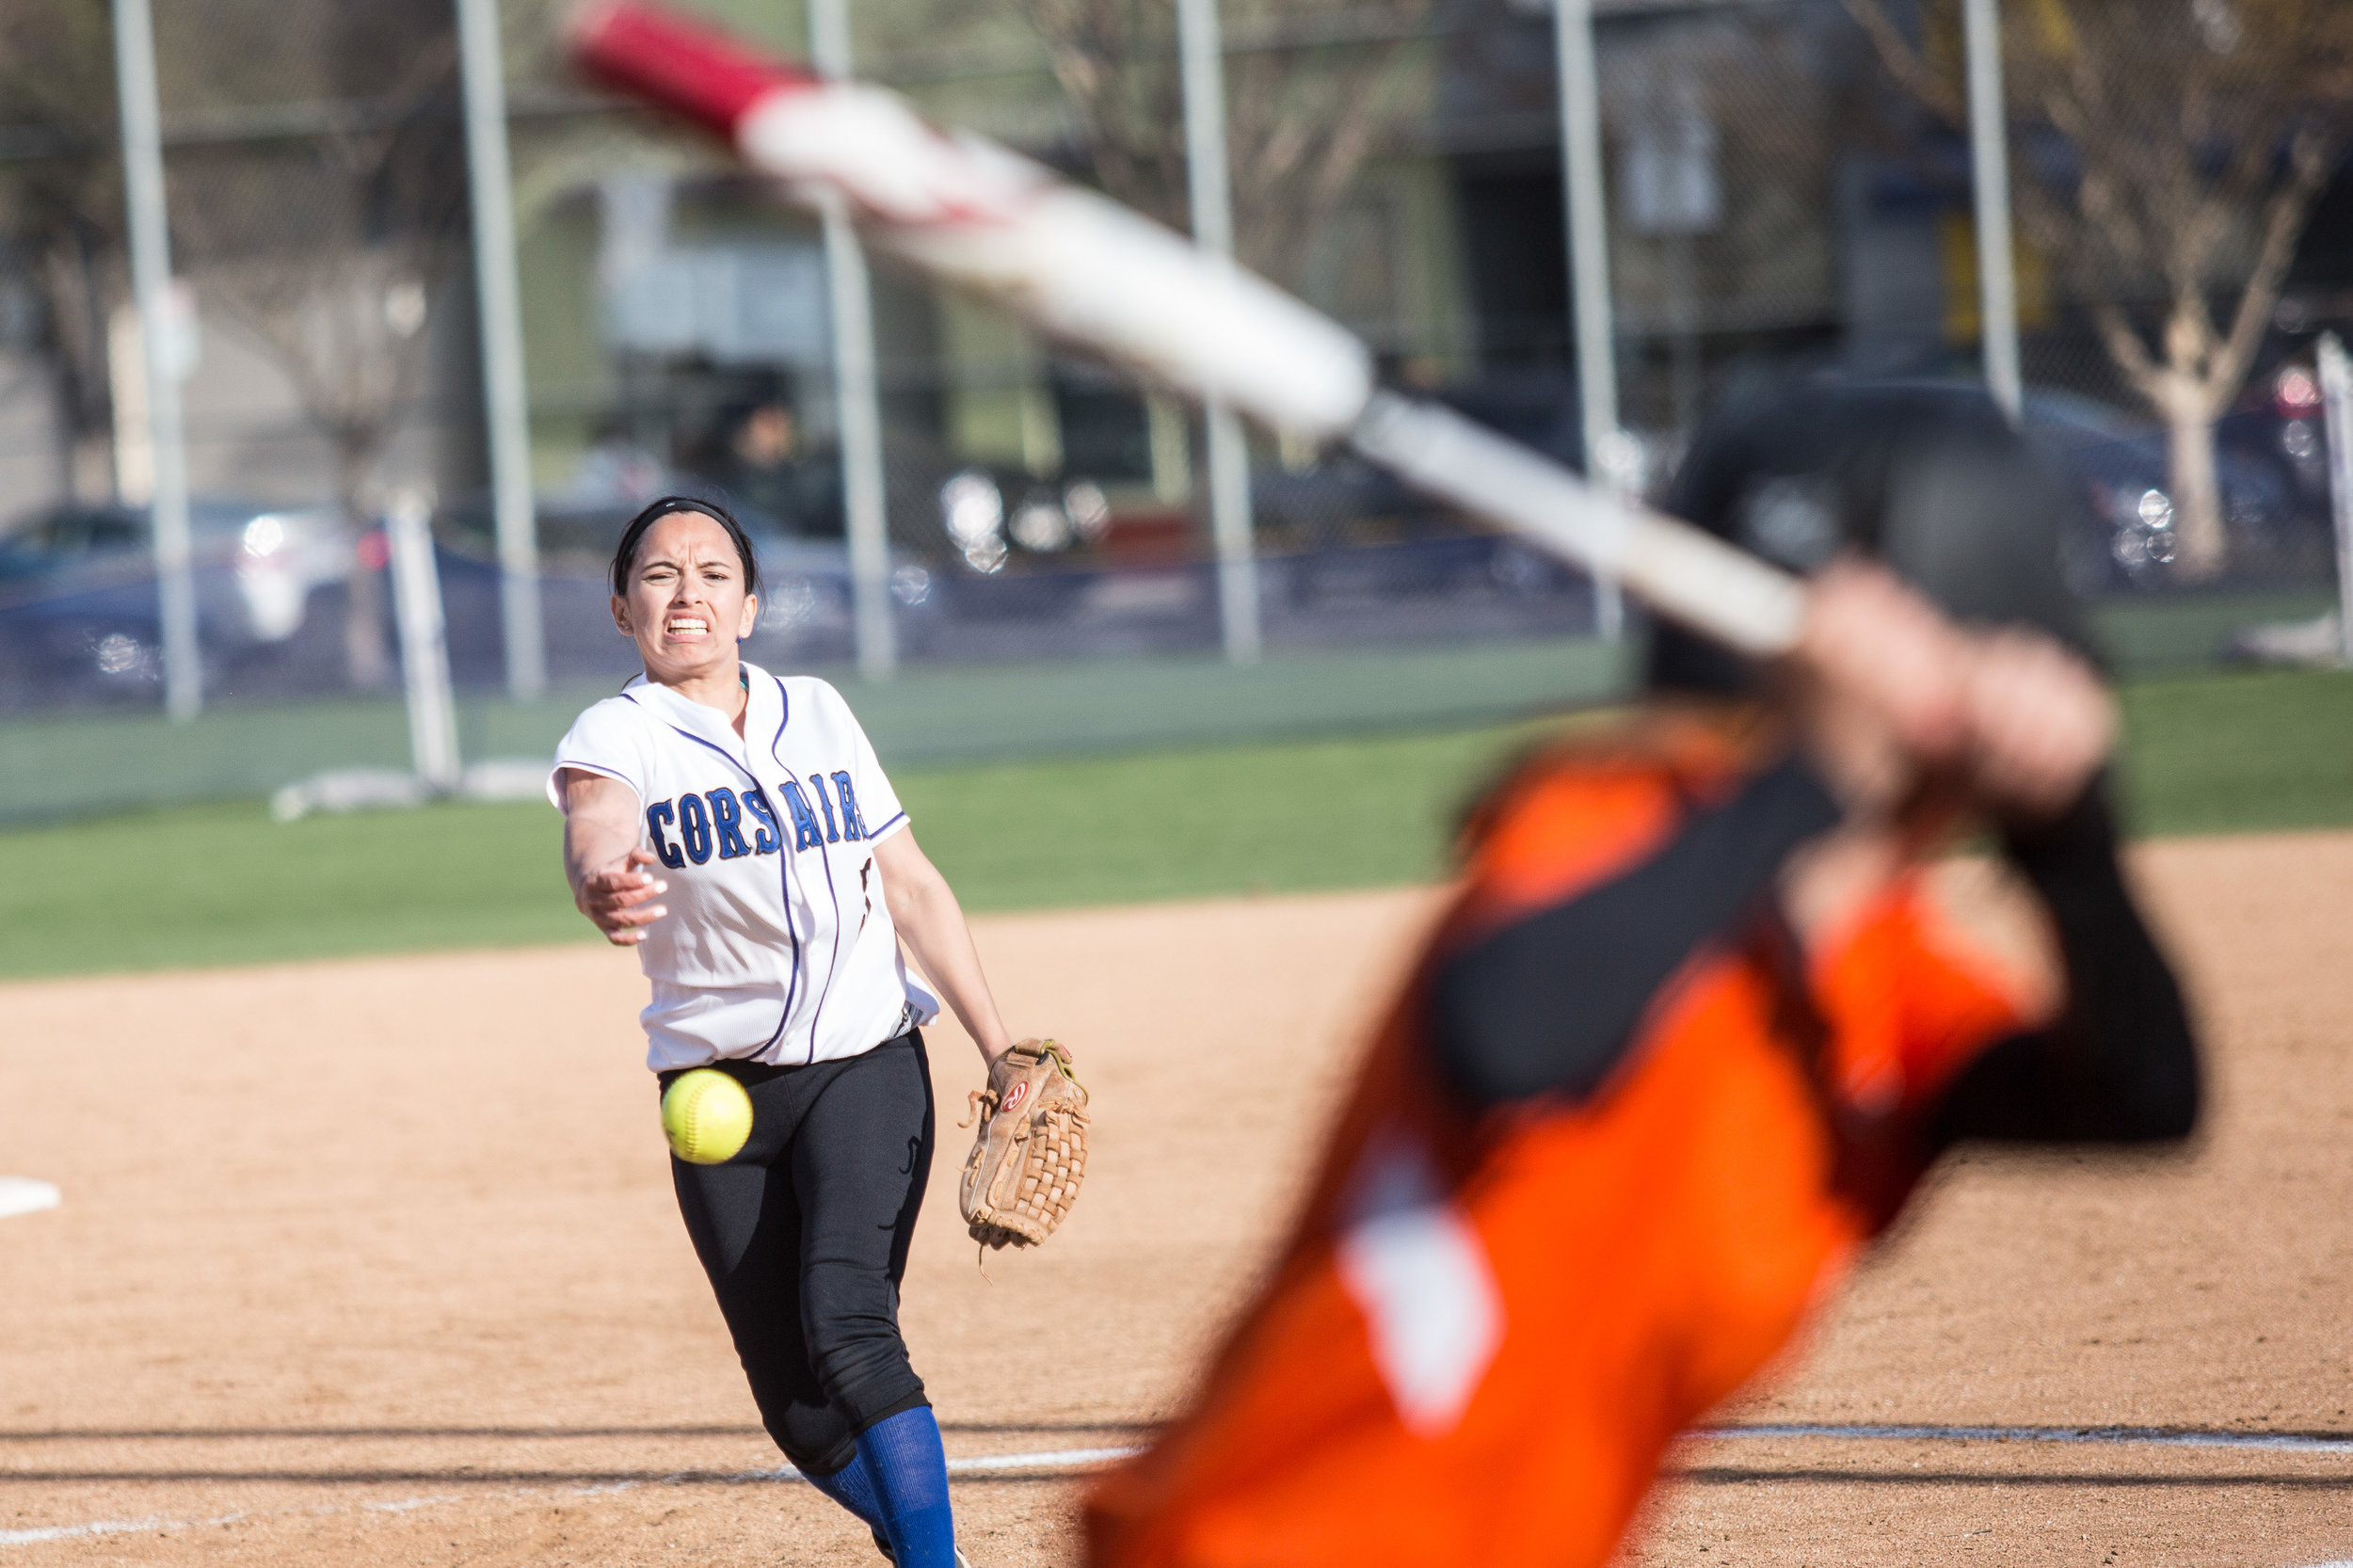 Santa Monica College Corsair freshman in-fielder Ashley Nava (#3, white) pitches a curve ball during the bottom of the third at the Corsair Field in Santa Monica, California, on Tuesday, February 27, 2018. The Corsairs would go on to lose the game 0-14 against the Ventura College Pirates. (Corsair Photo: Matthew Martin)